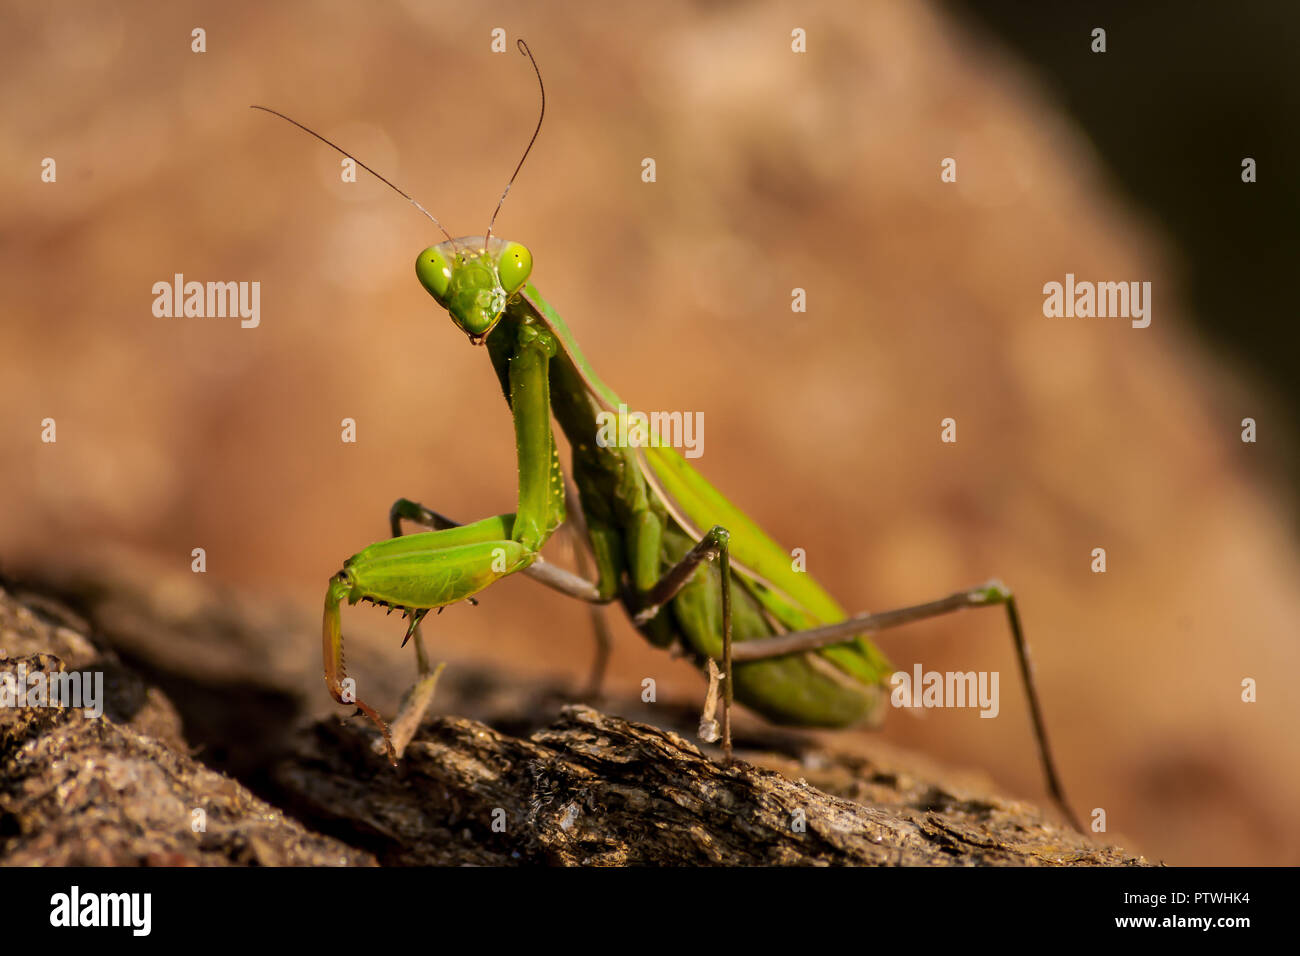 Green praying mantis looking at the camera close up on a rocky background Stock Photo